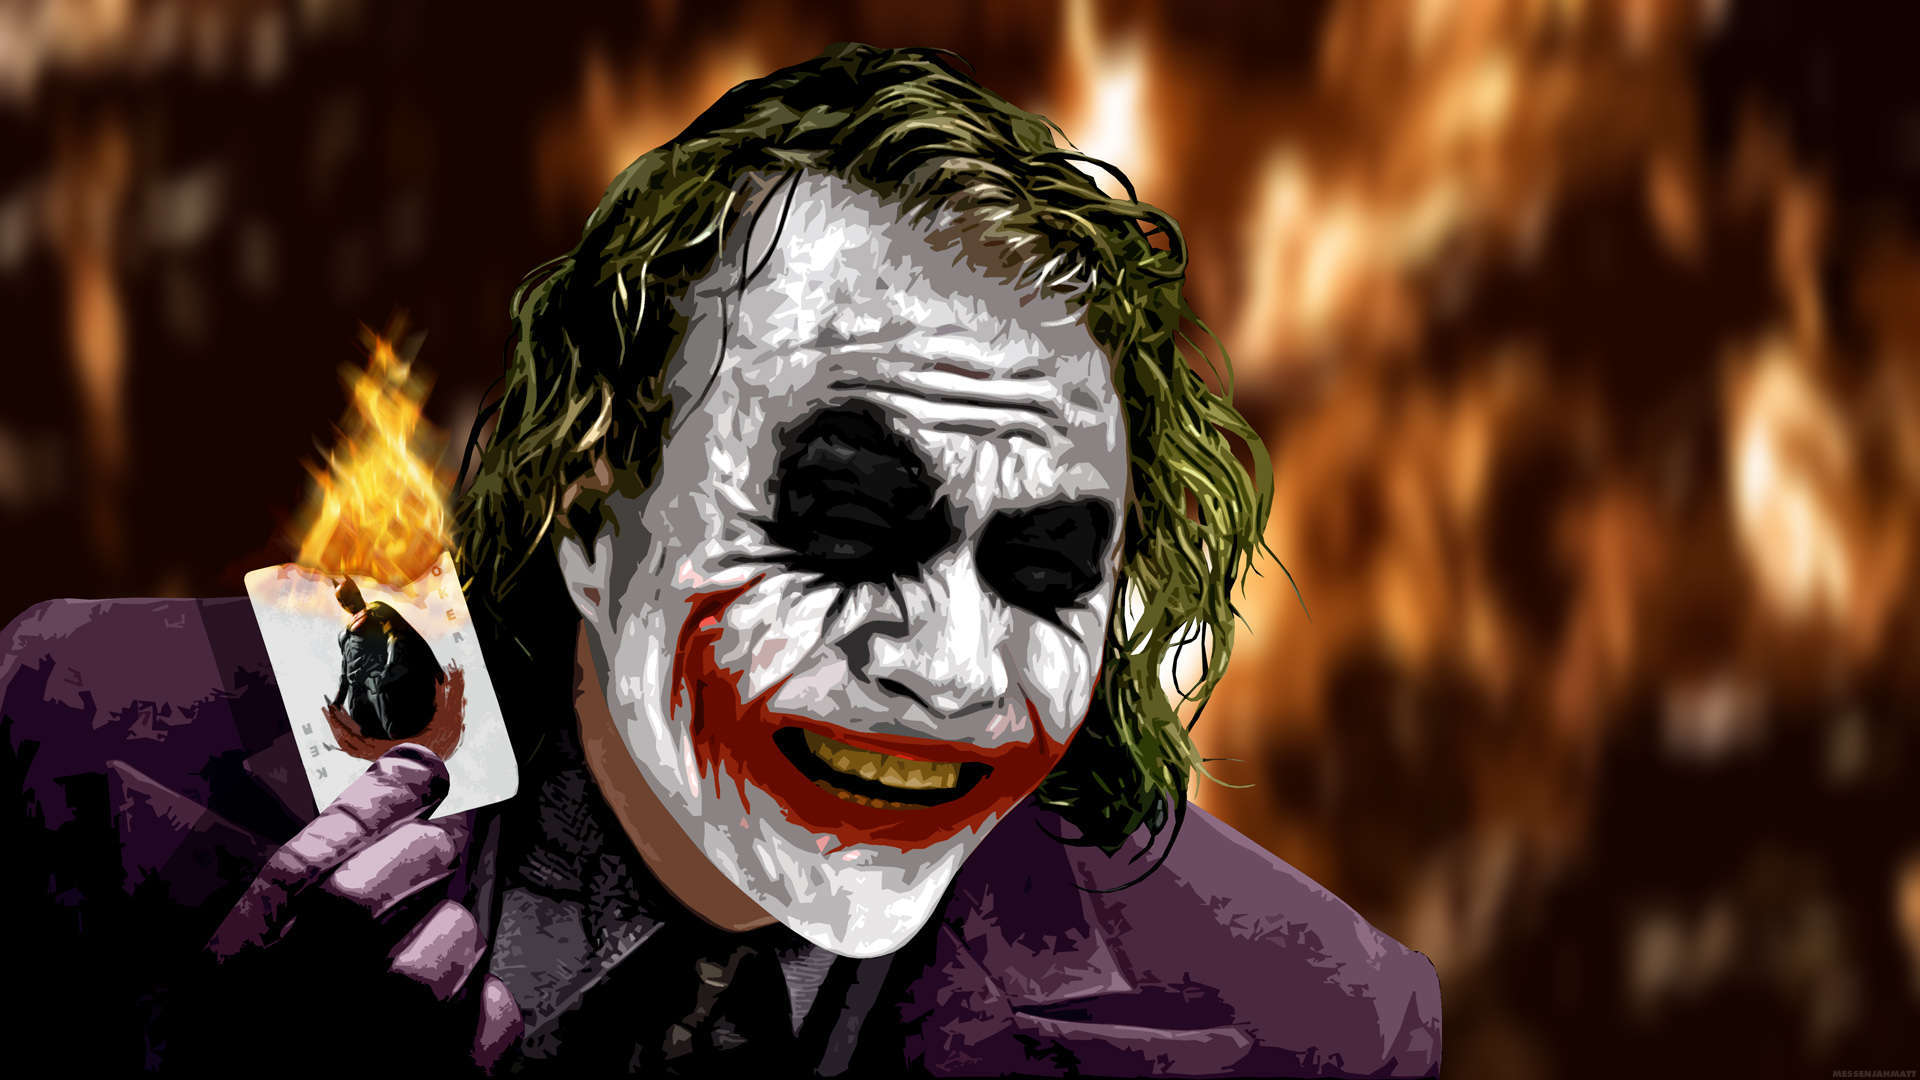 entries in The Joker Heath Ledger Wallpapers